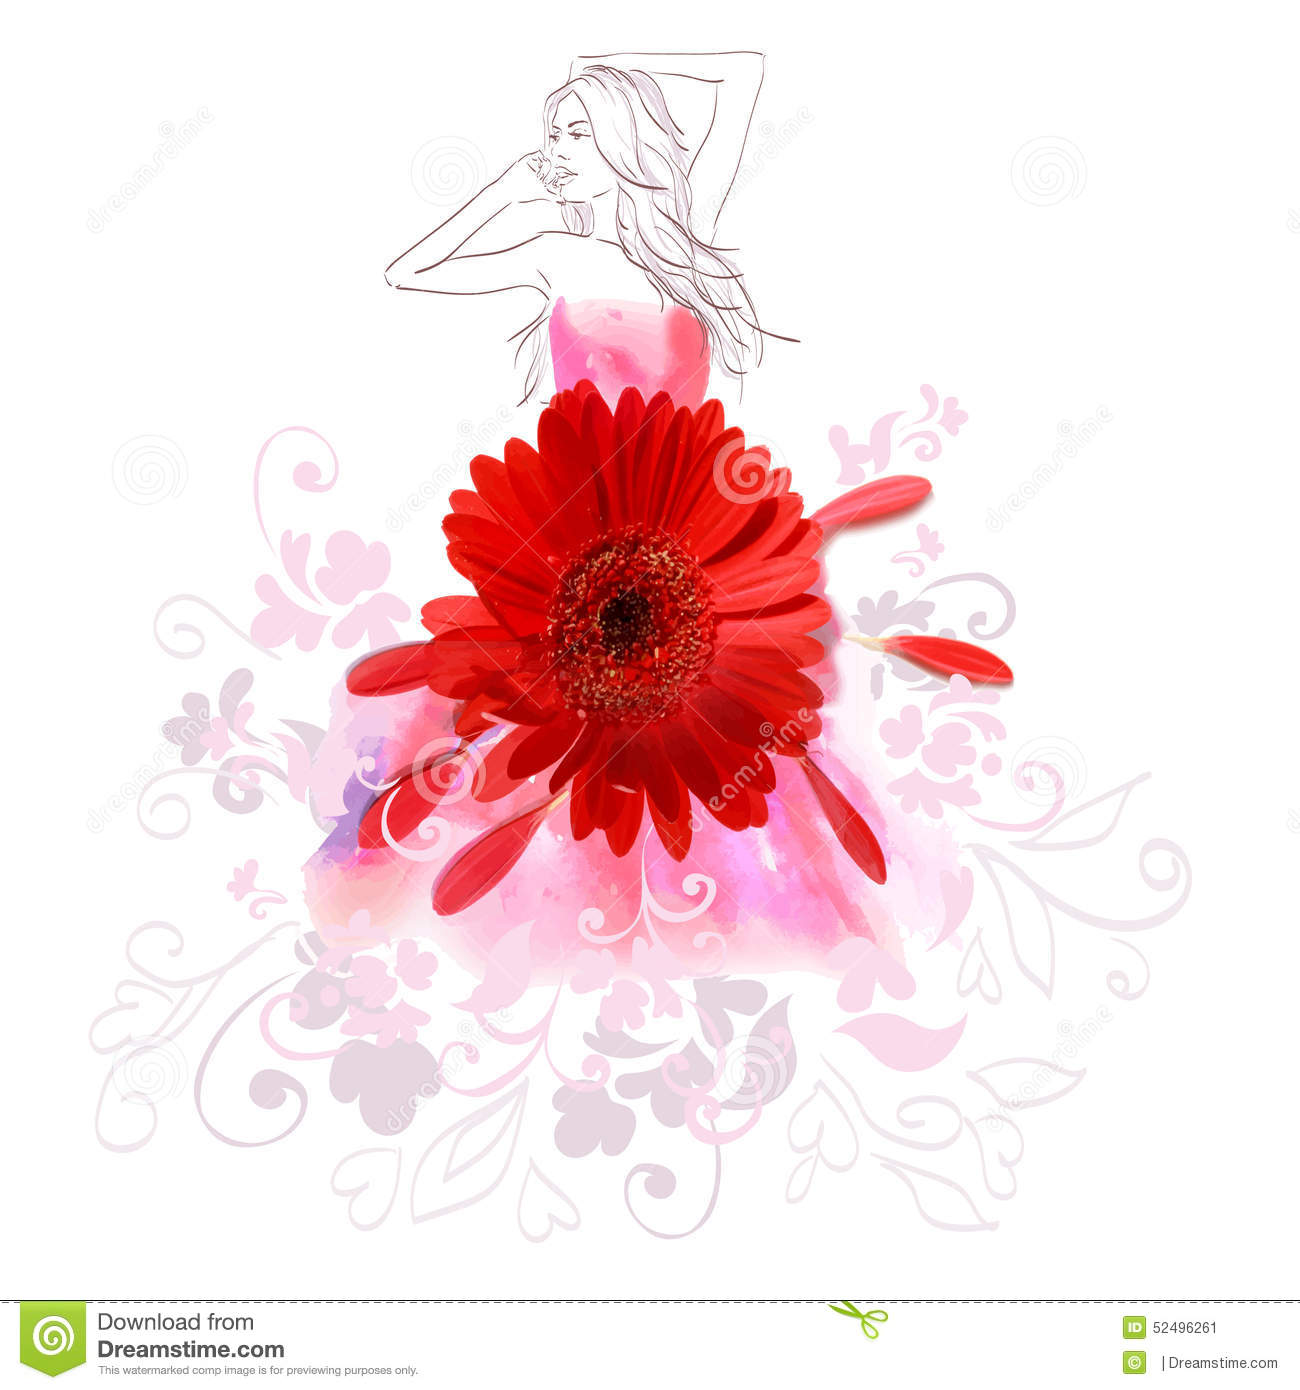 Painted Girl In A Dress Made Of Flowers Stock Vector ...